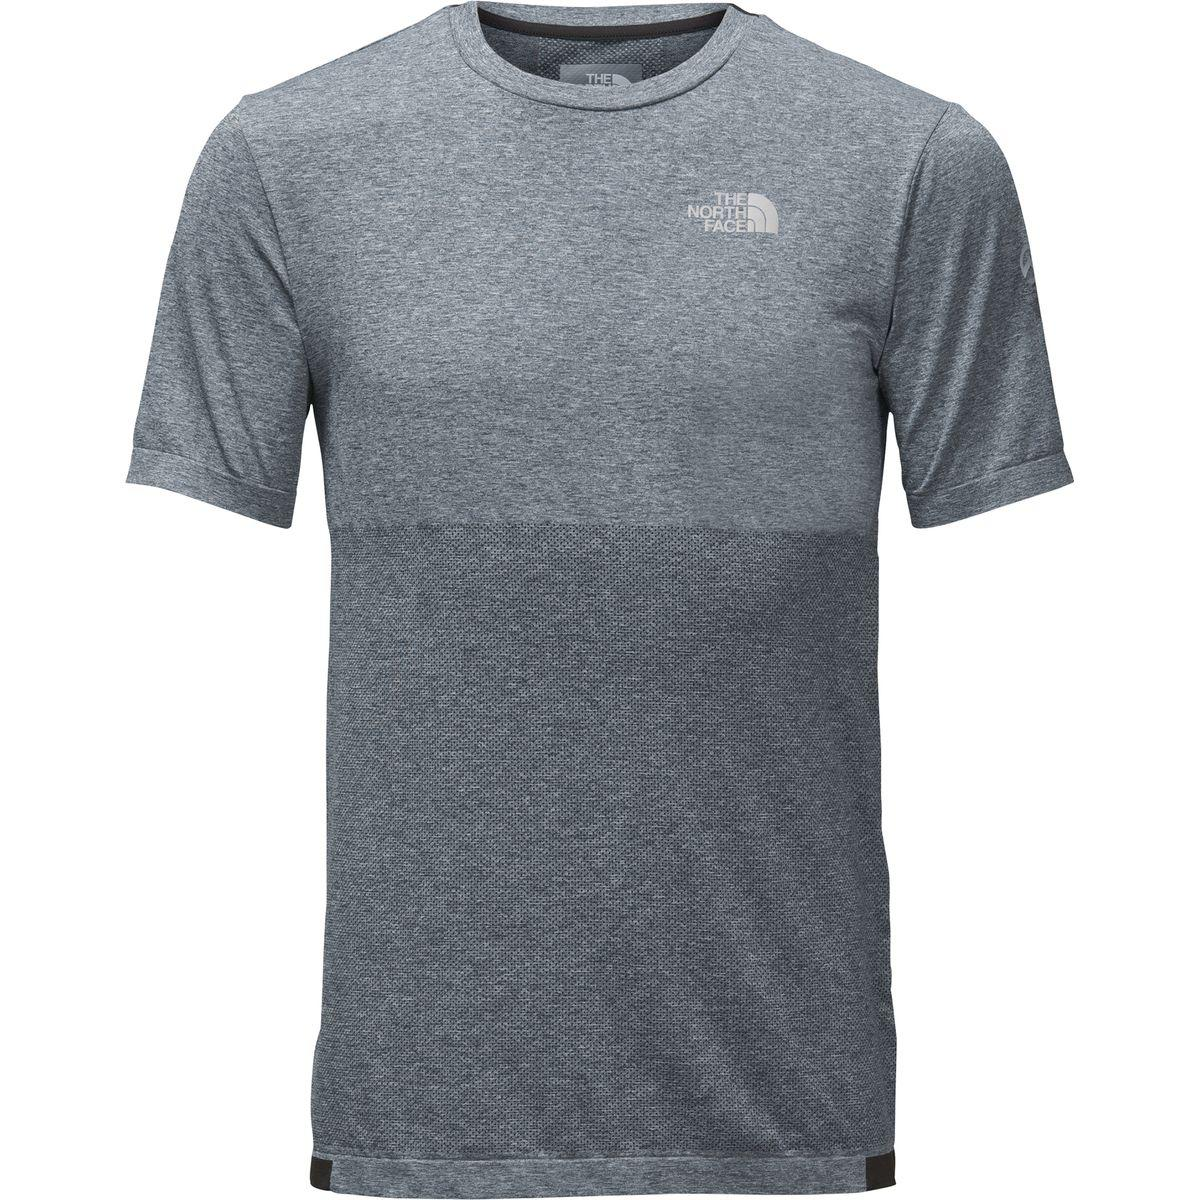 01d6eba6 The North Face - Gray Summit L1 Engineered Short-sleeve Top for Men - Lyst.  View fullscreen